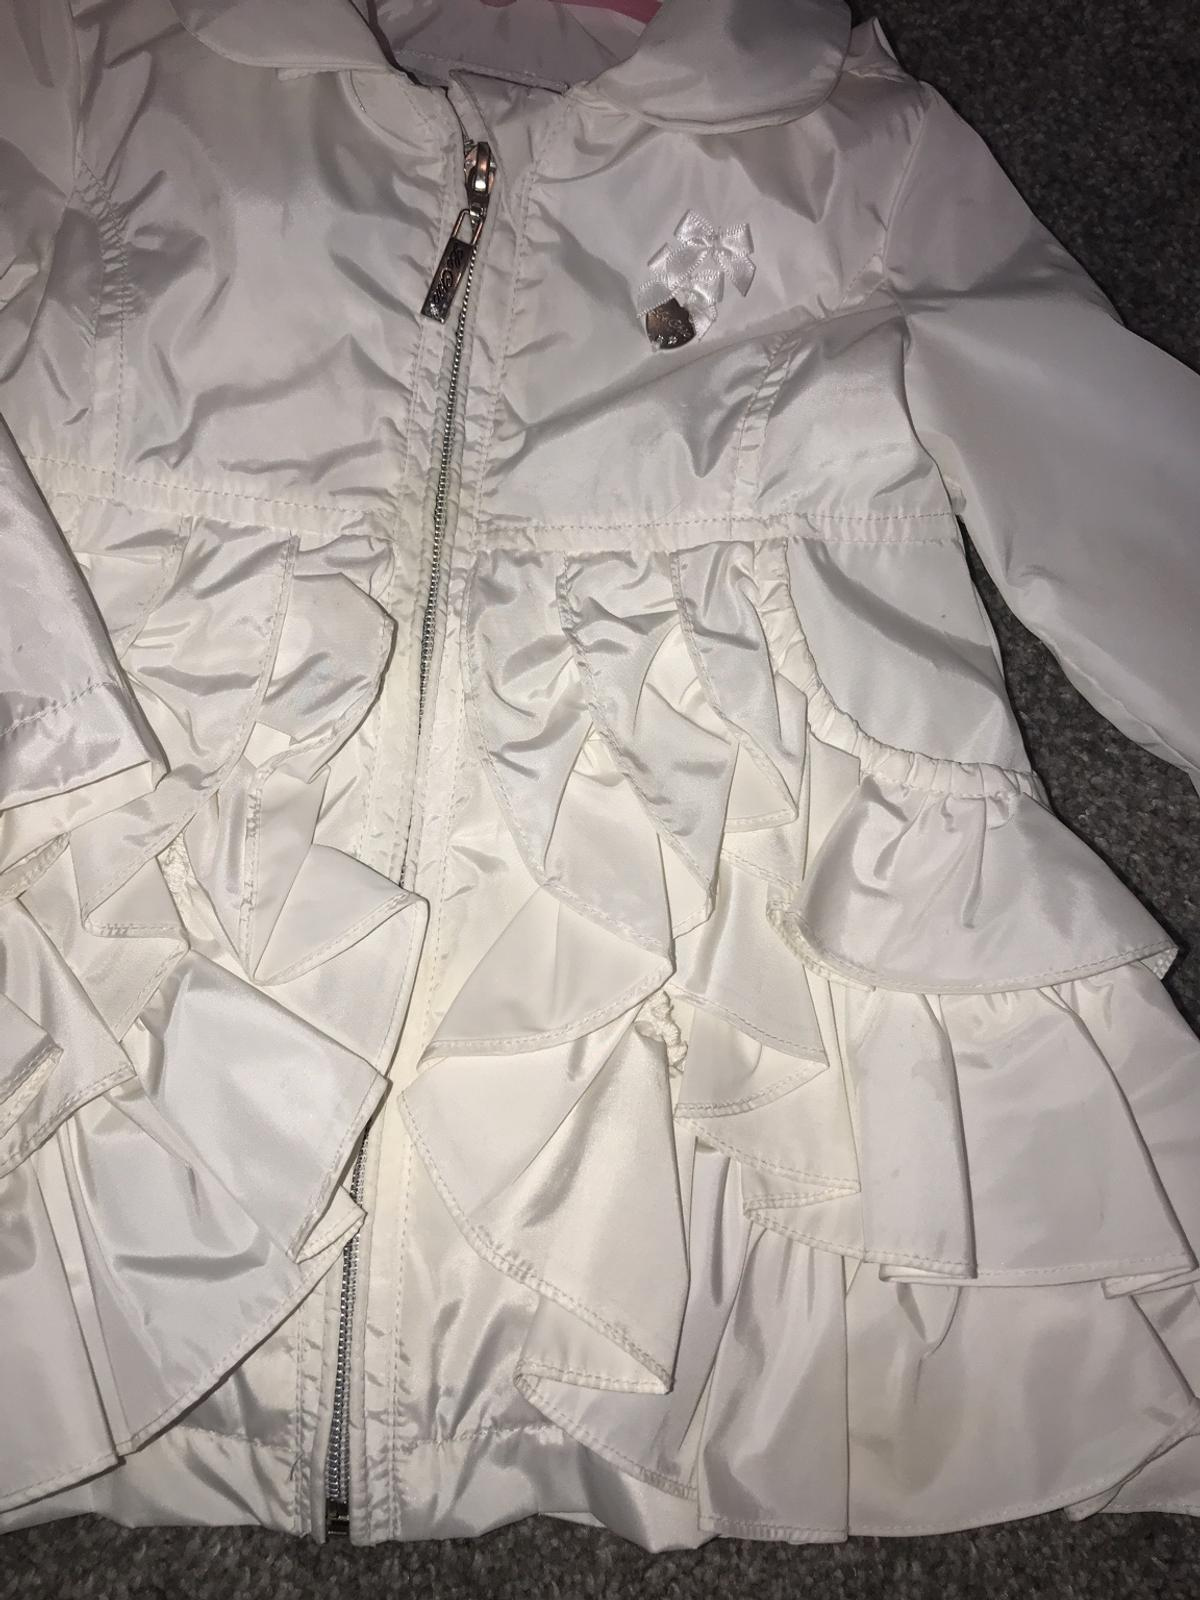 Immaculate condition! Hardly worn baby girls white ruffle summer coat size 80! Also have this in pink to collection only or can post out for postal cost!